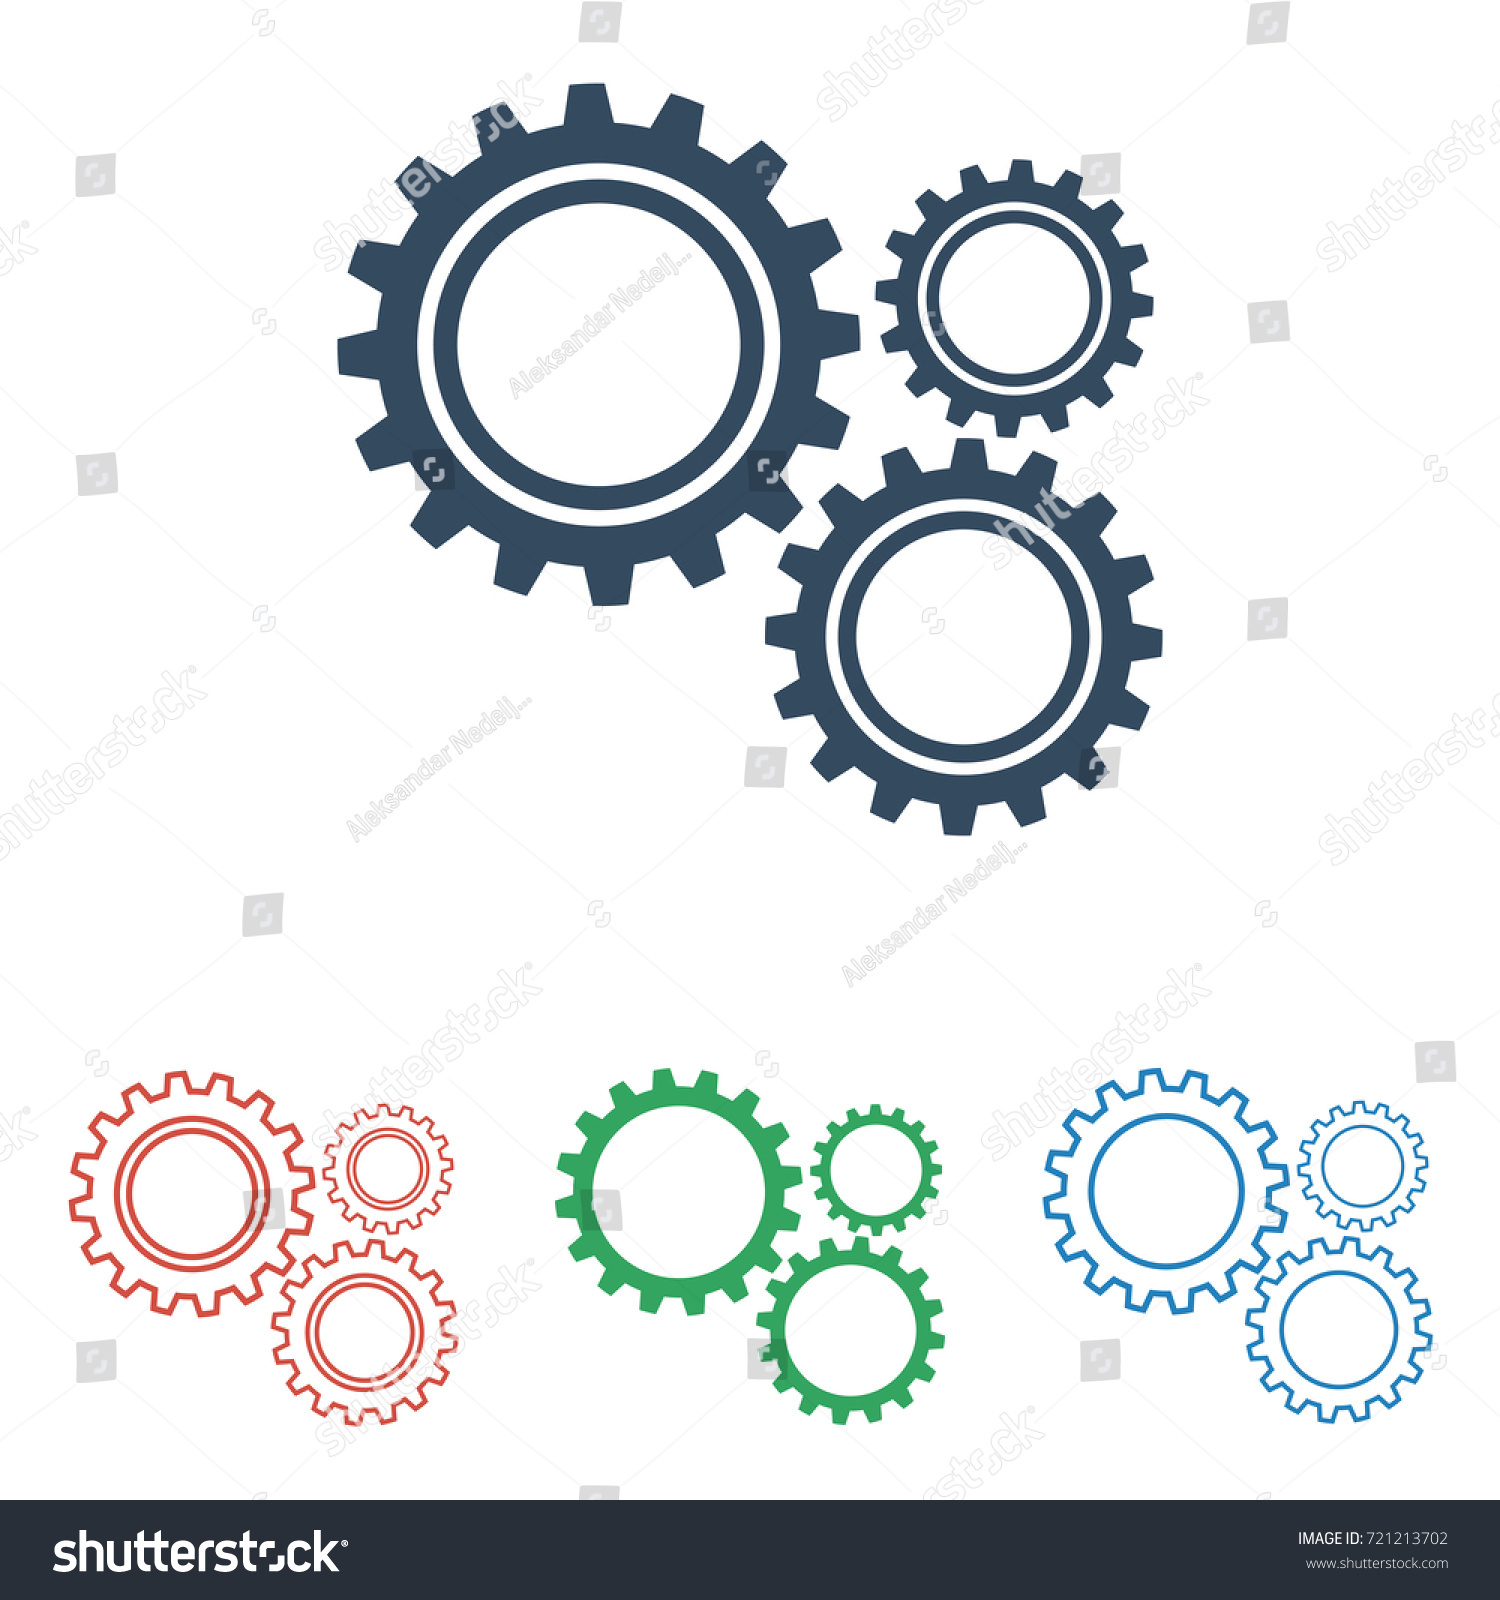 Set gear icons simple flat design stock vector 721213702 set of gear icons simple flat design isolated on white background vector sciox Image collections